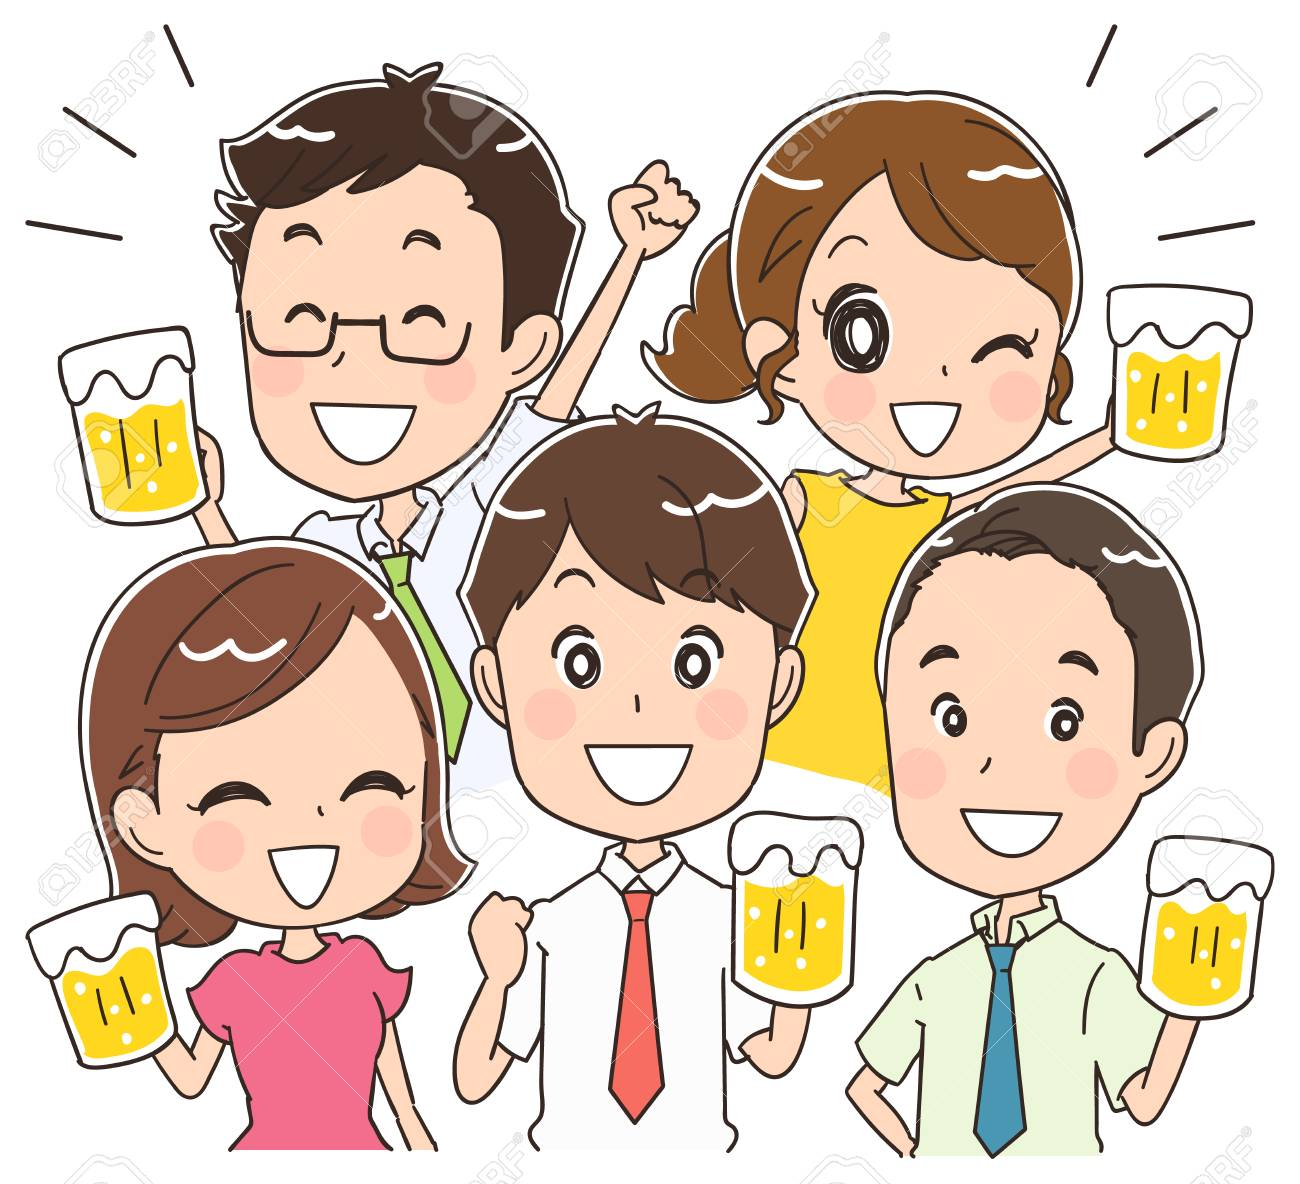 Men and women are drinking beer.